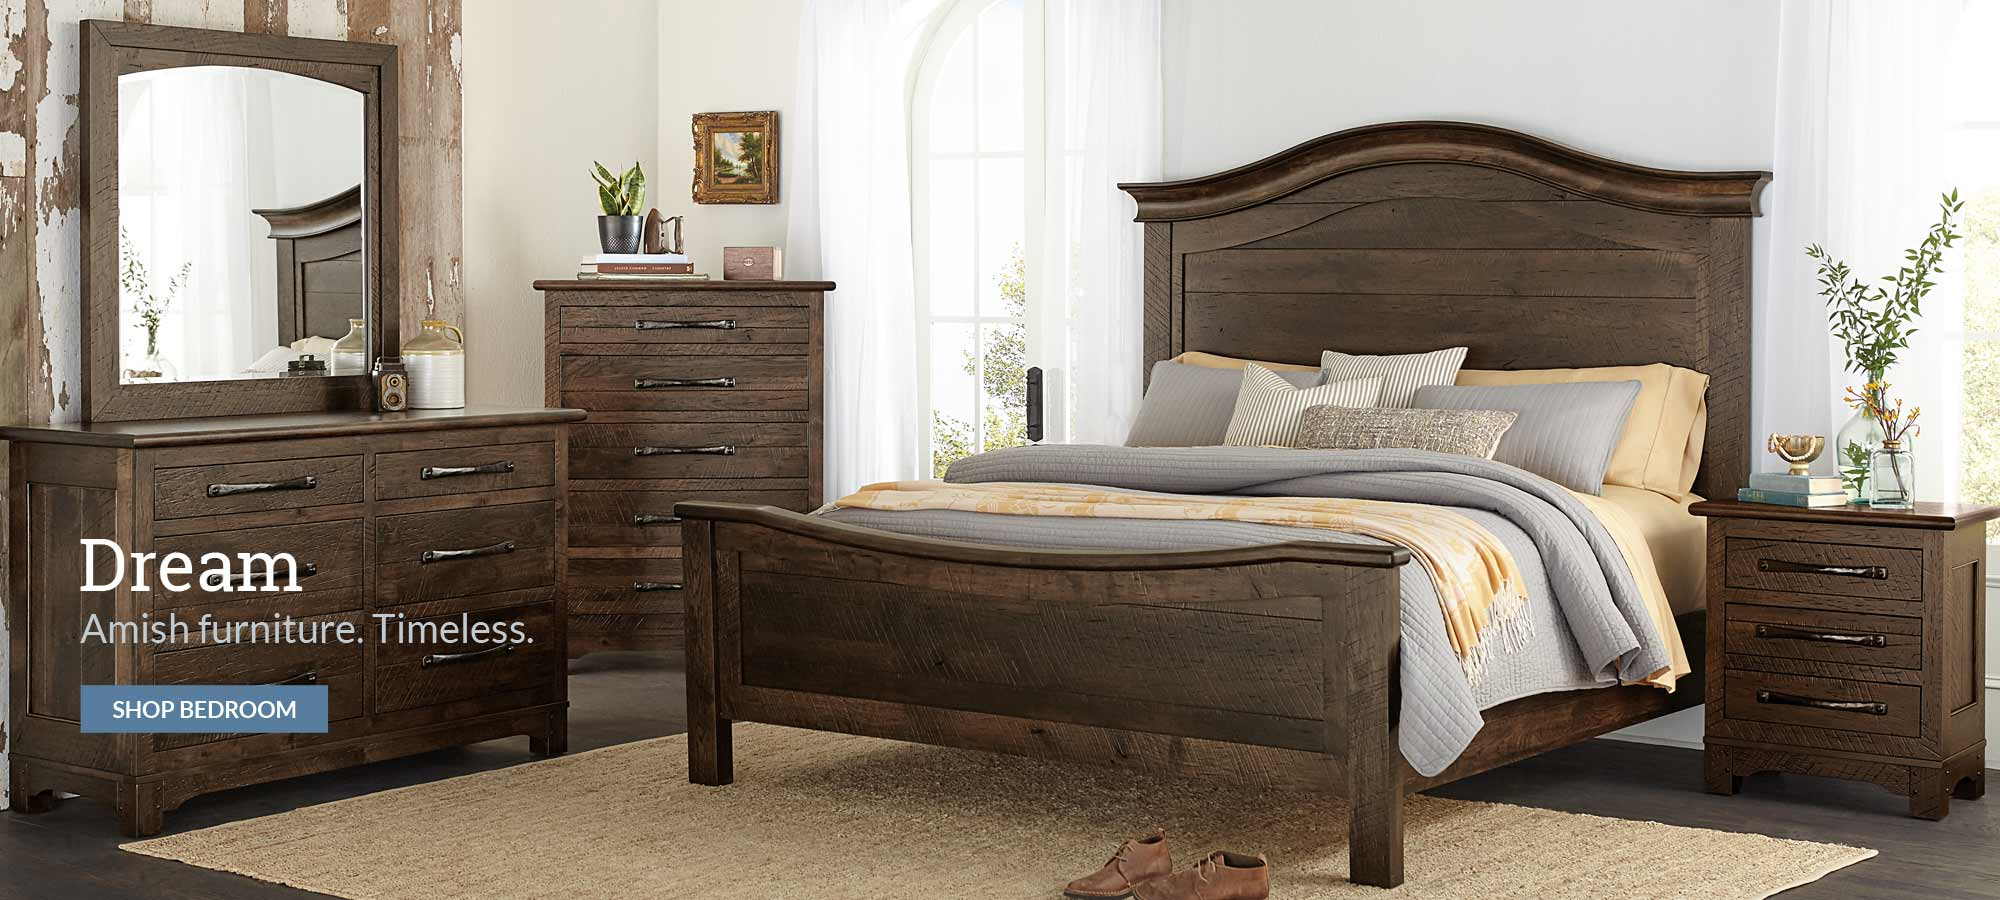 Mattie Lu - Amish Solid Wood Bedroom Furniture